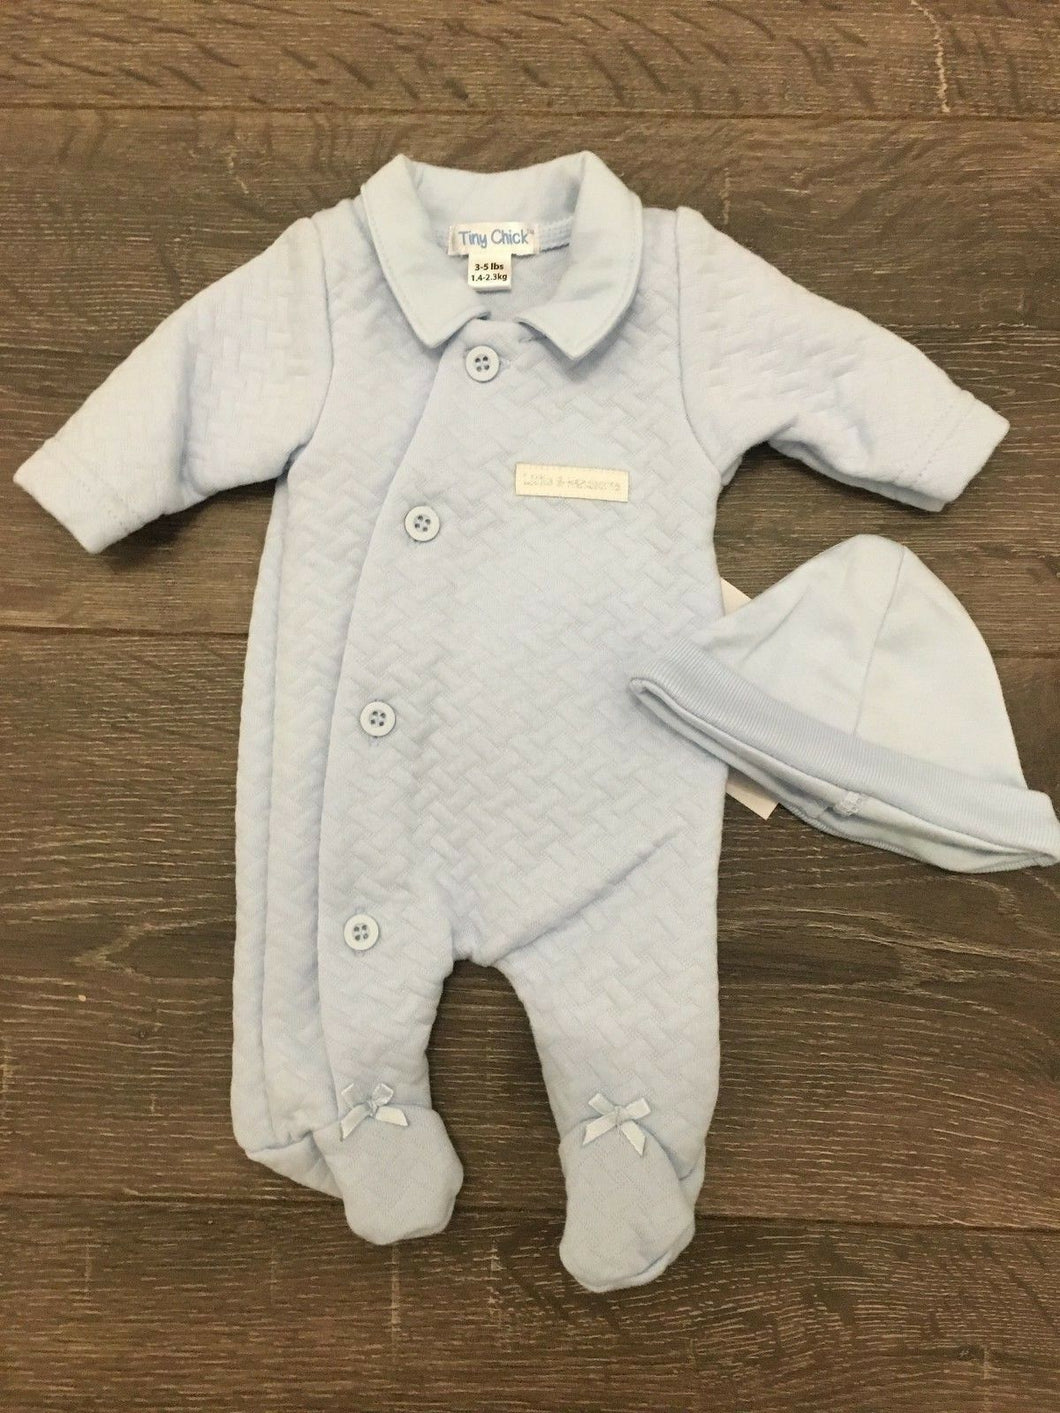 Tiny Baby & Premature Baby Boy's 2 Piece Pale Blue